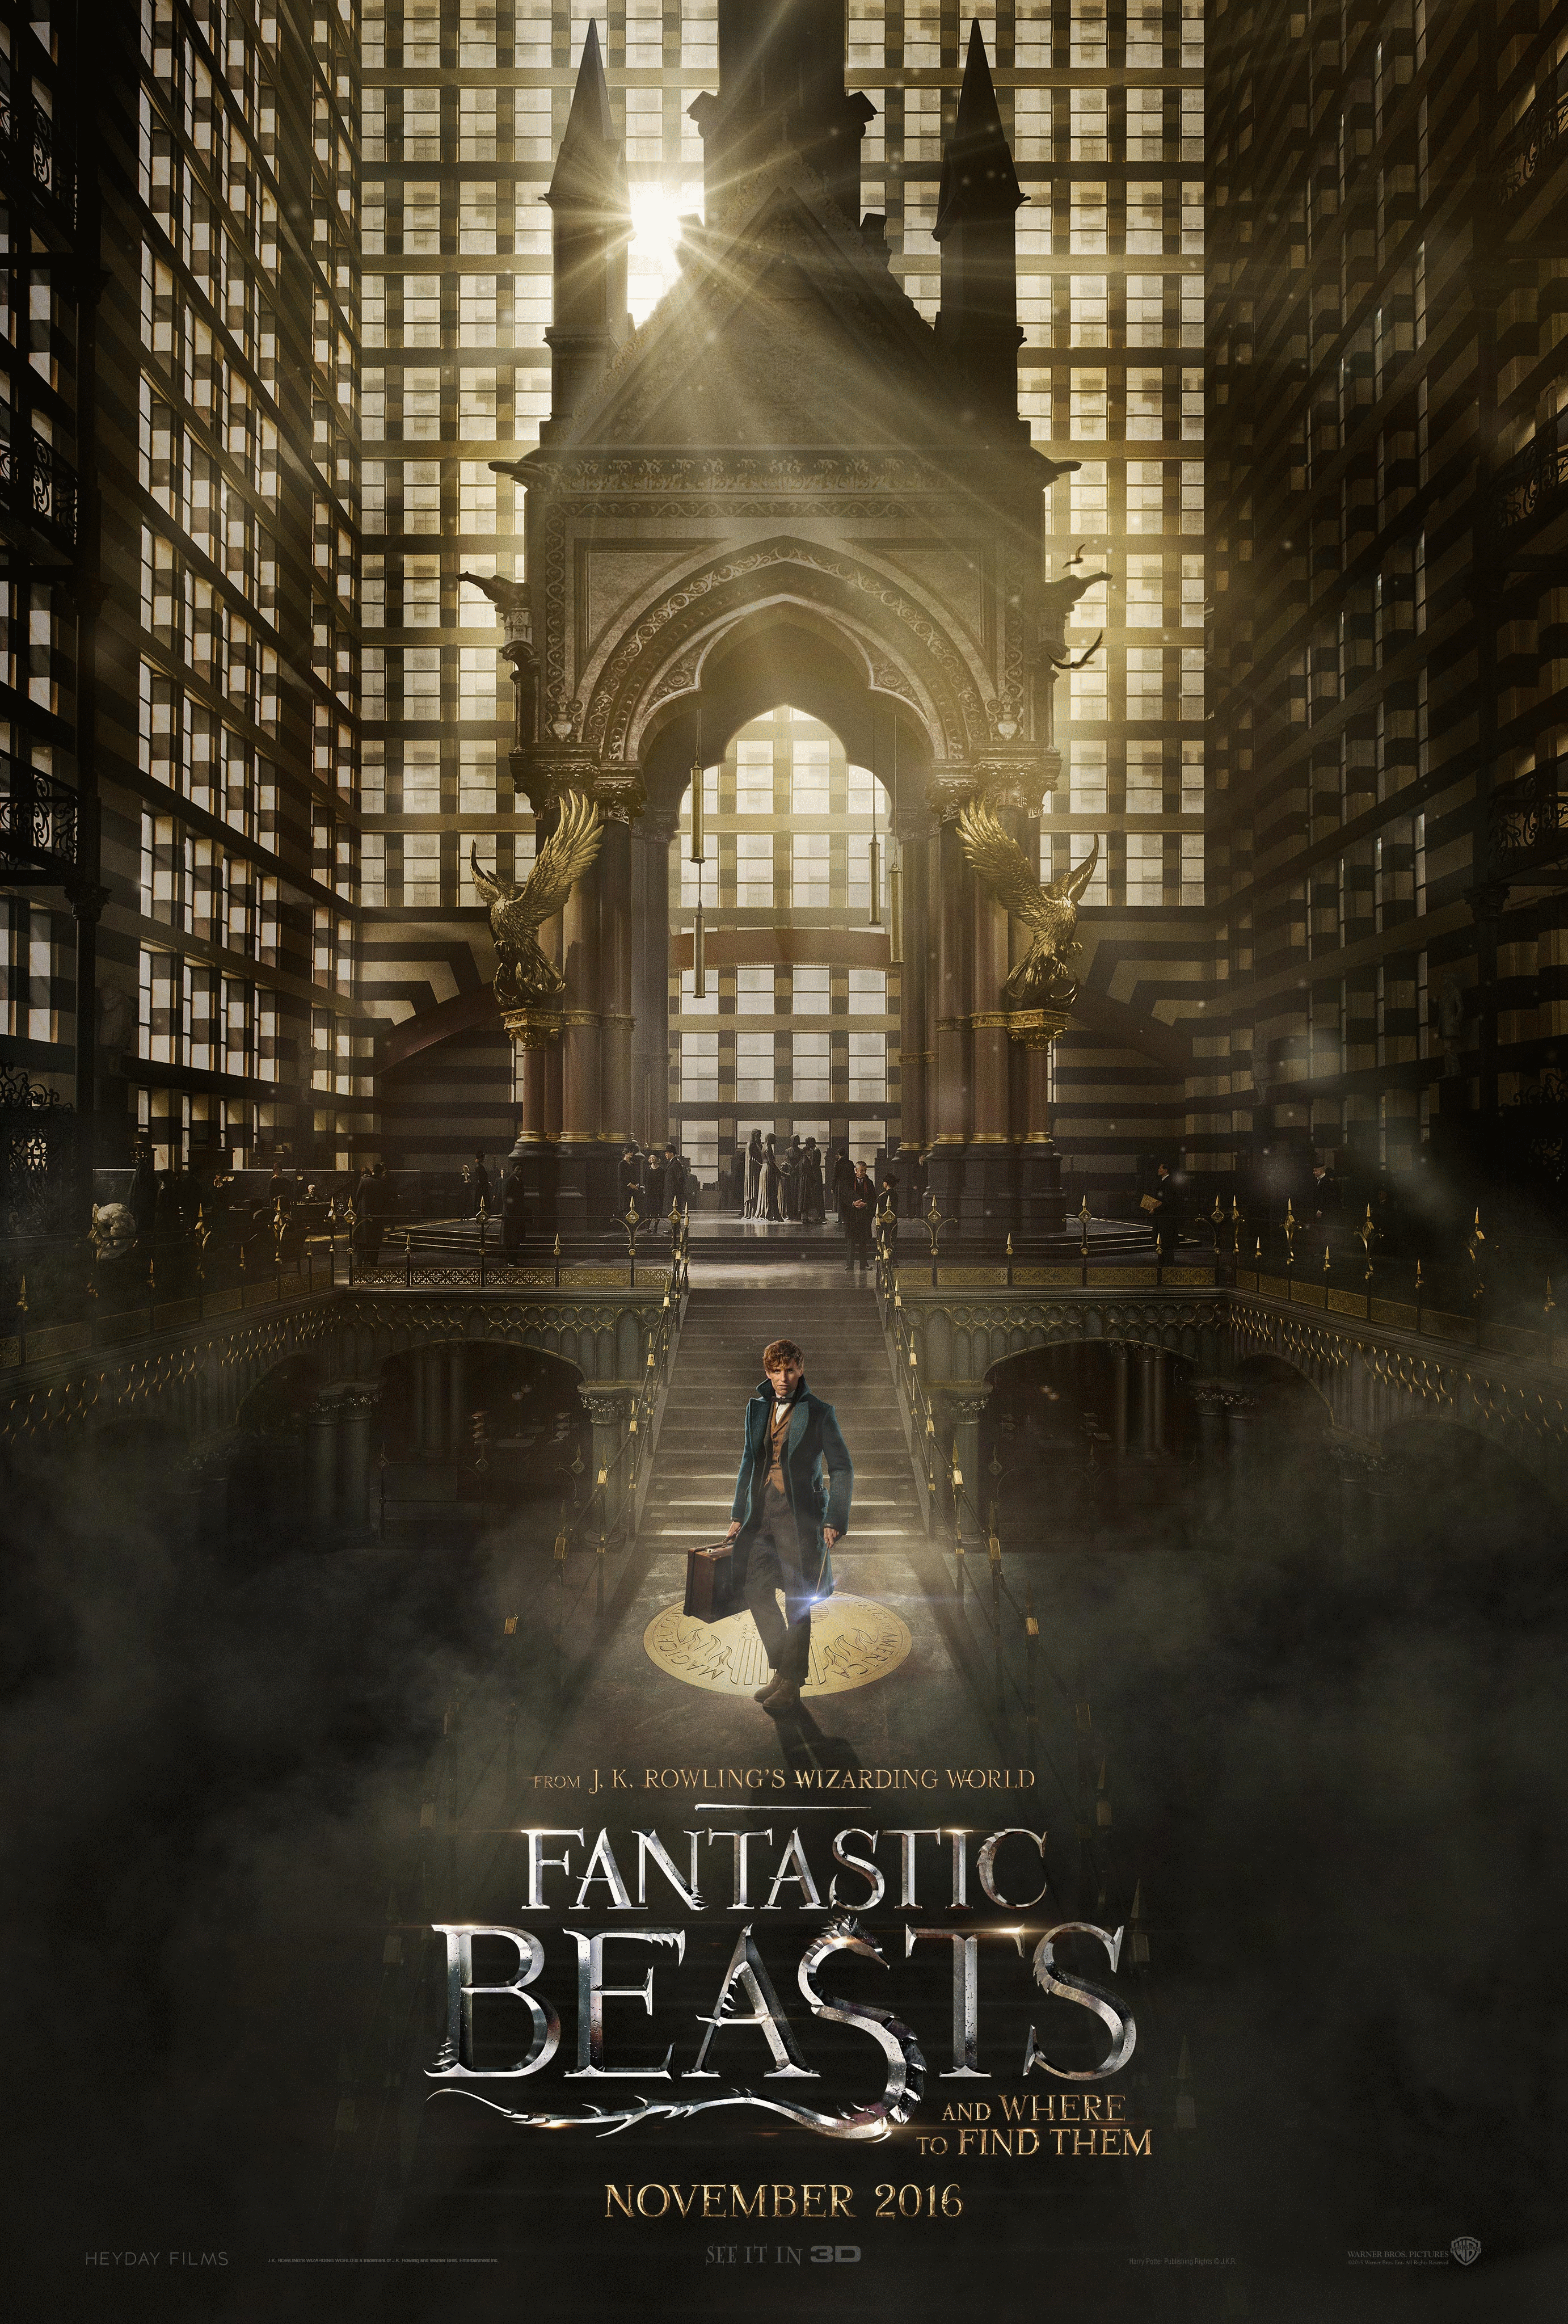 http://vignette2.wikia.nocookie.net/harrypotter/images/0/01/FBWTFT_Poster.png/revision/latest?cb=20151215162644